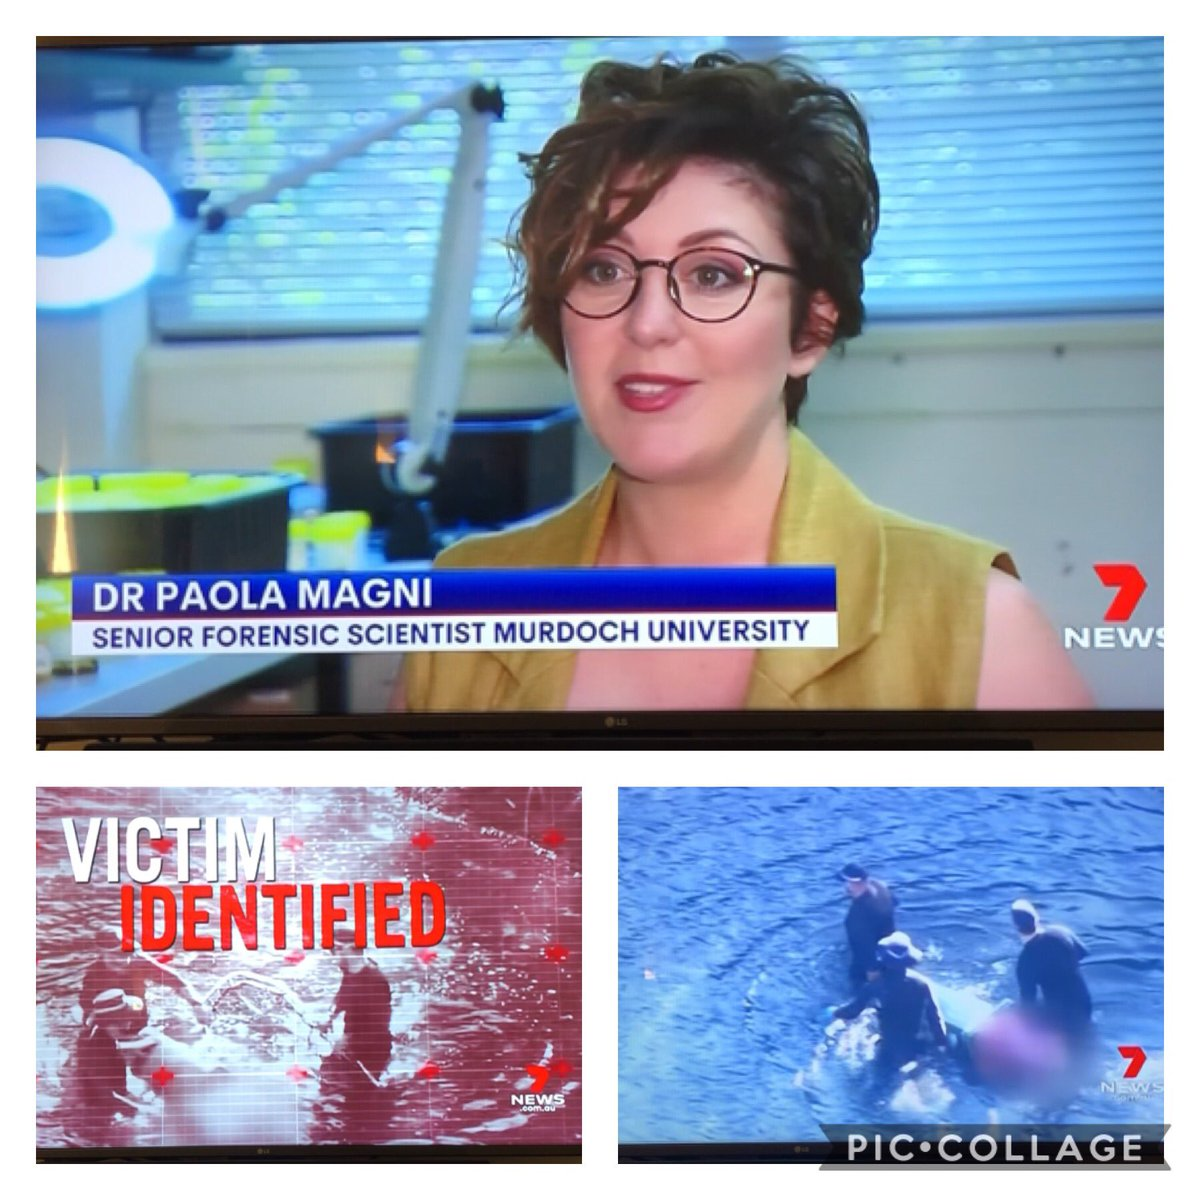 Thank you @EmilyClareBaker @7NewsPerth for swinging by @MurdochUni to discover the potentials of #forensicscience in investing cases in #aquatic environment!  #AquaticForensics #WomenInSTEM #STEM #forensics #scicomm #casework #research